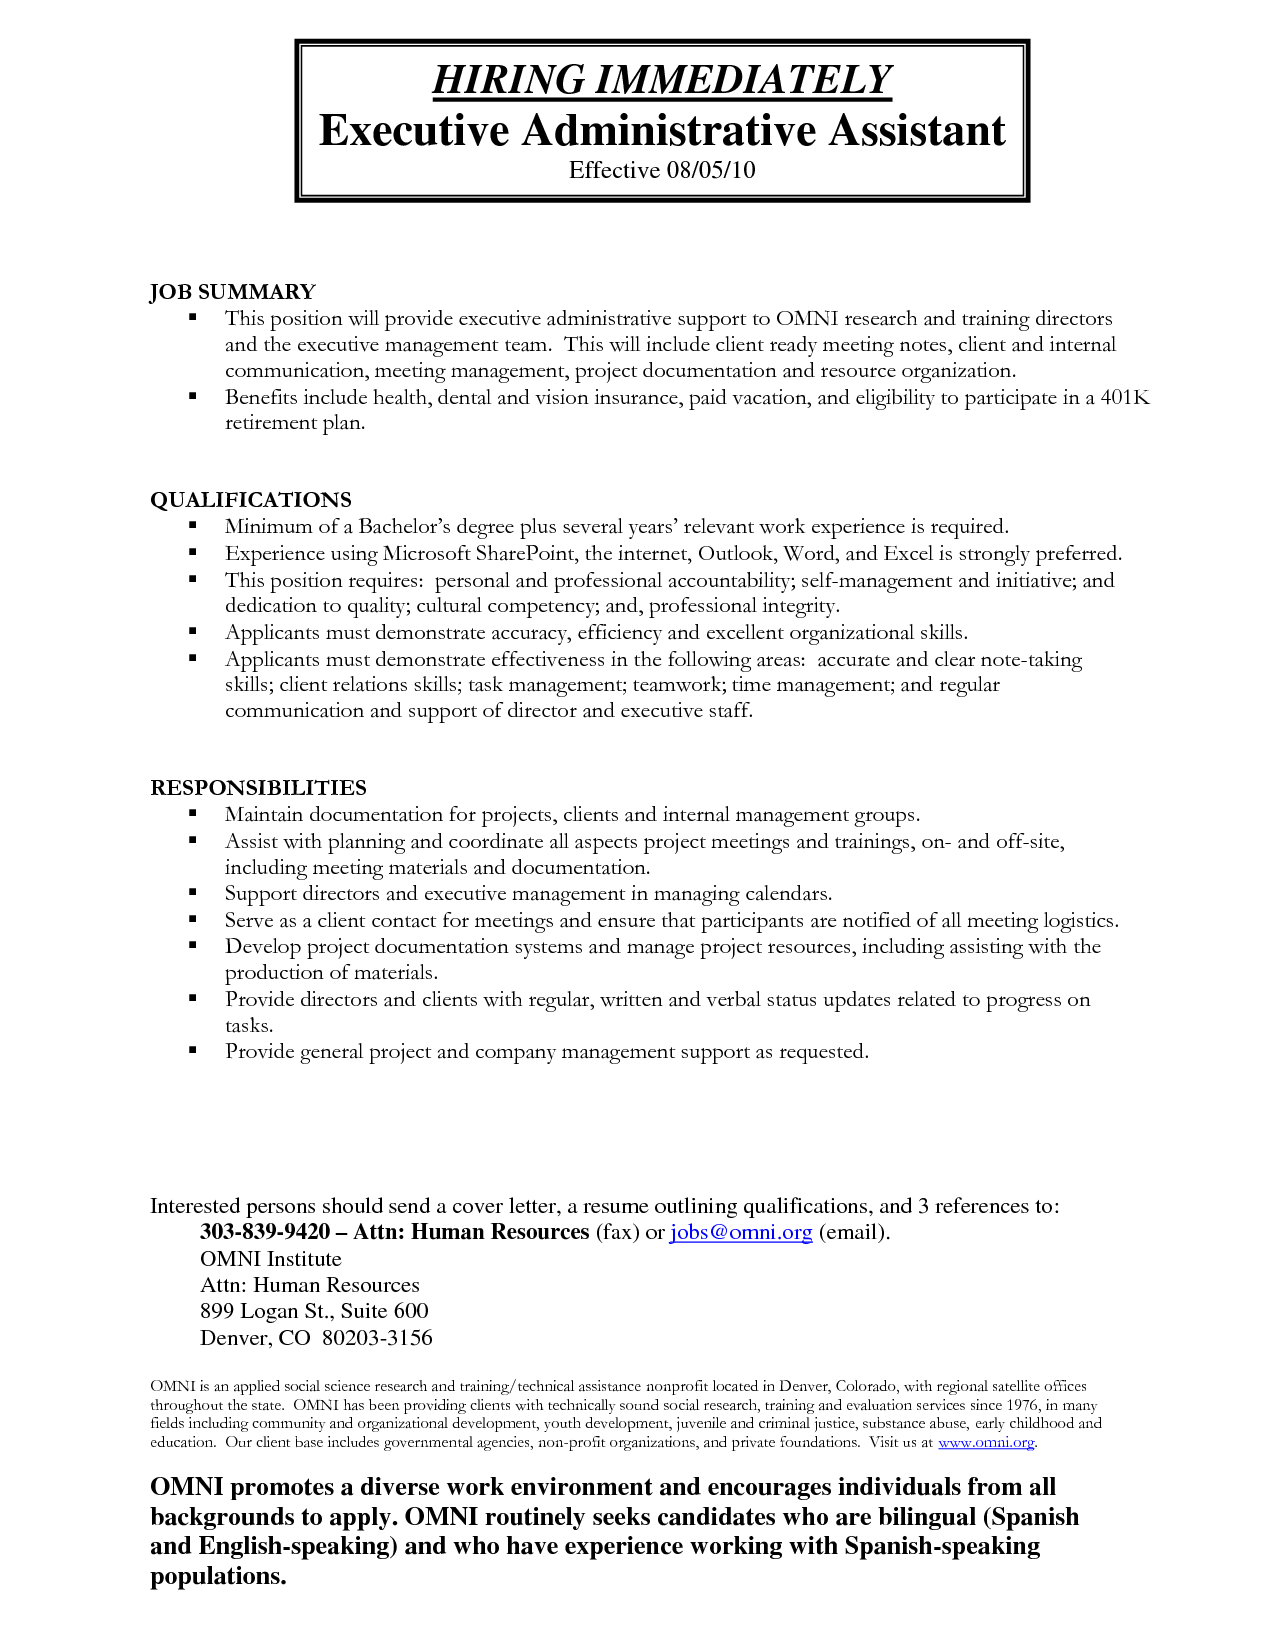 Administrative Assistant Duties Construction Company Sample Resume  Sample Resume Of Administrative Assistant